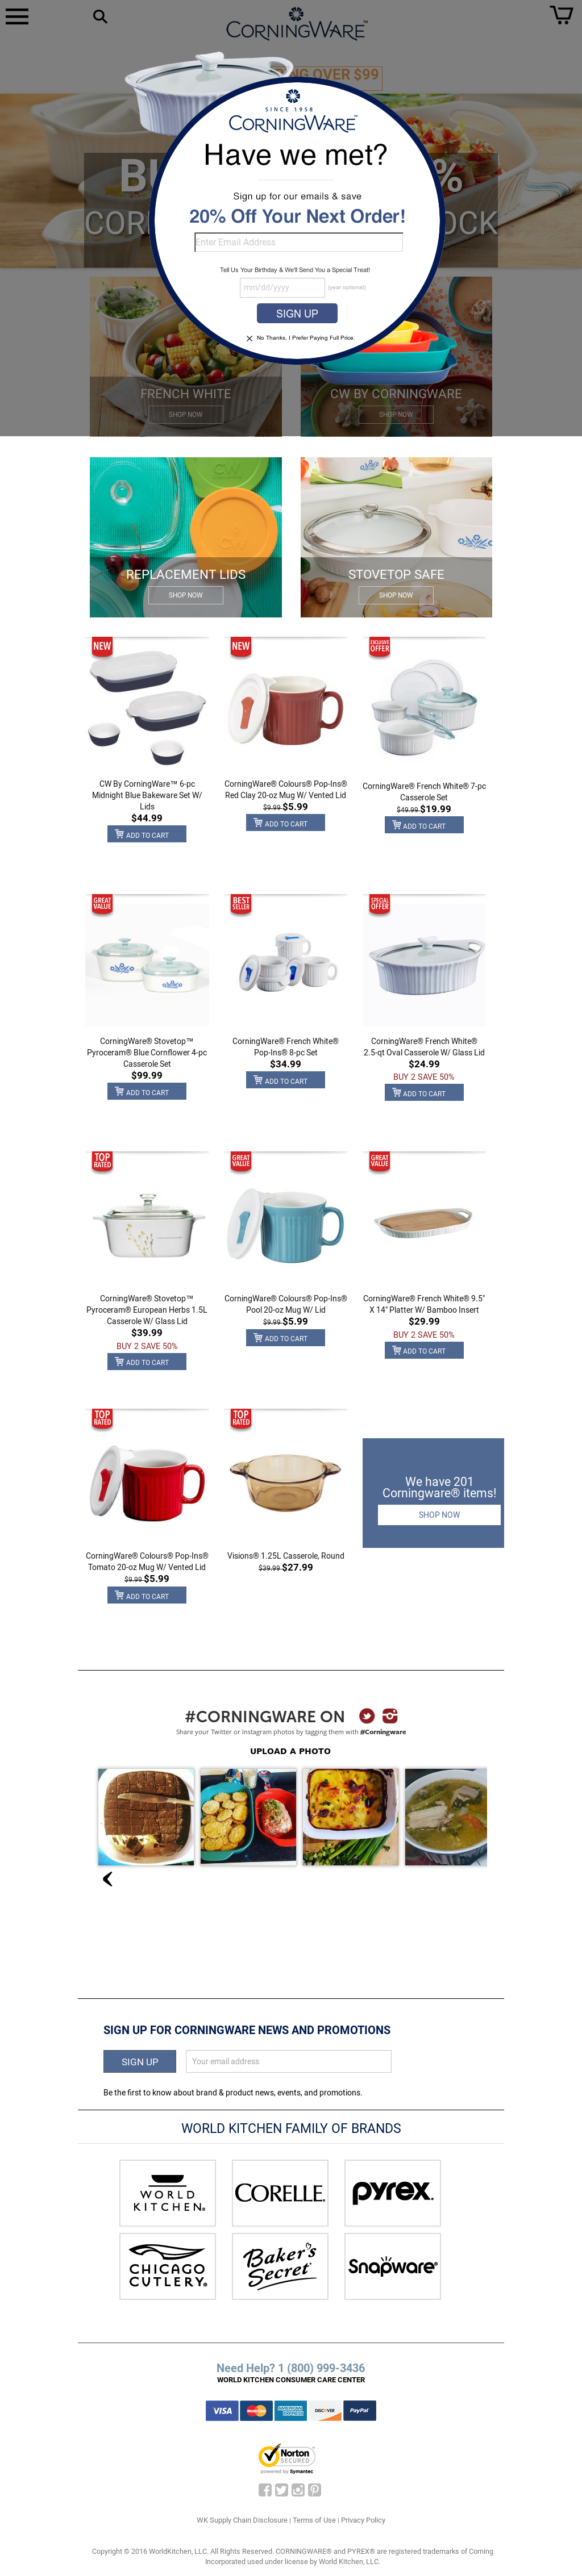 CORNINGWARE Competitors, Revenue and Employees - Company Profile on ...